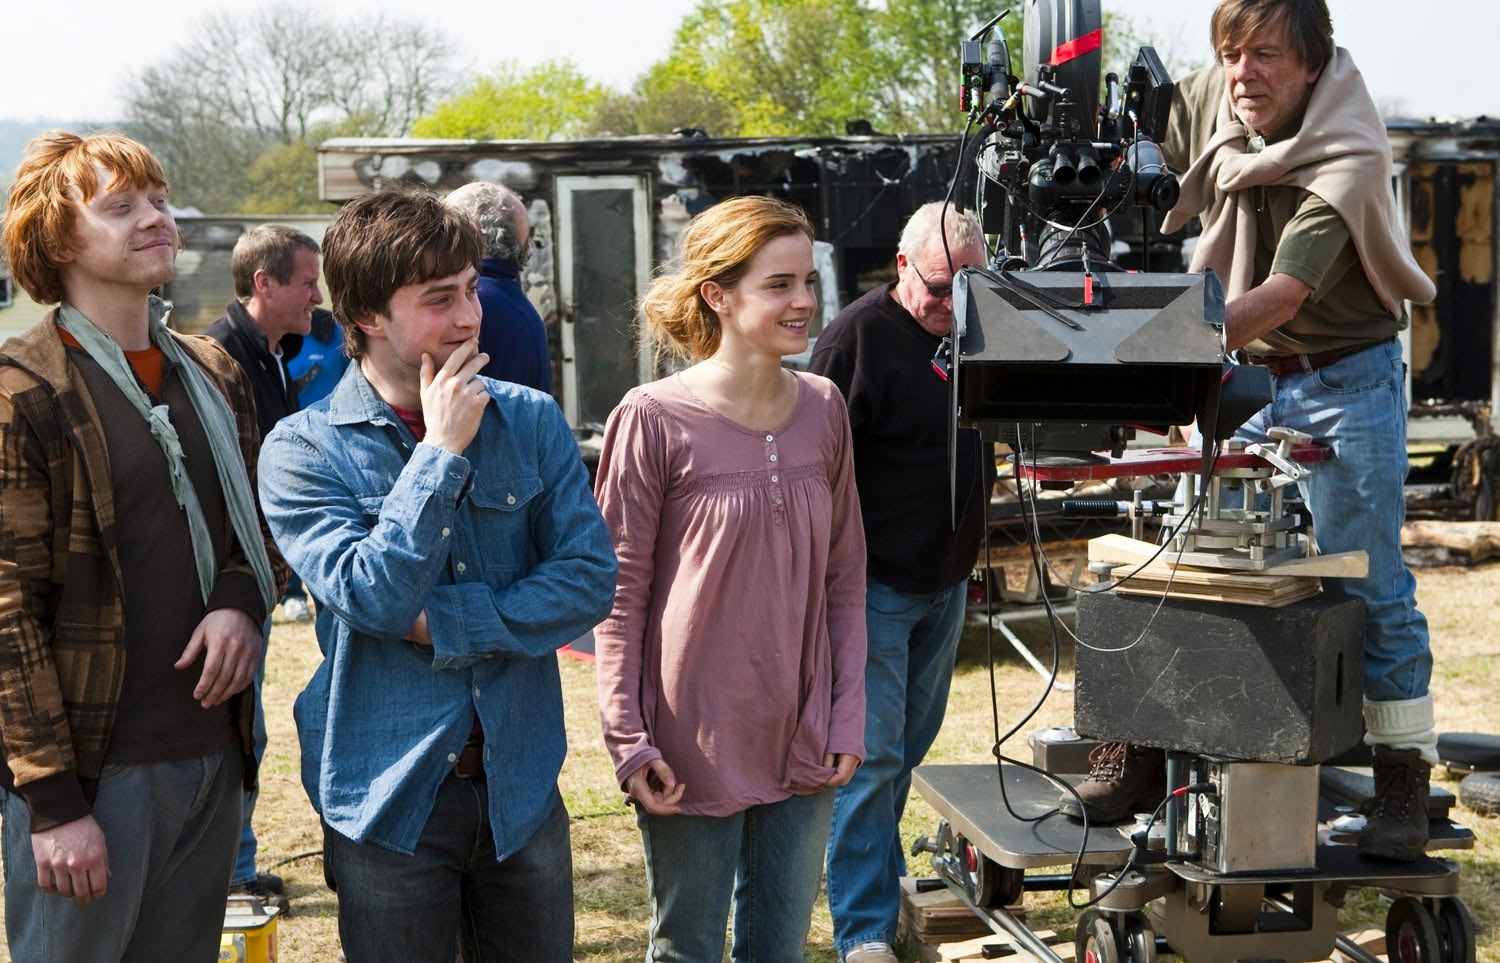 Rupert, Dan and Emma filming outdoors